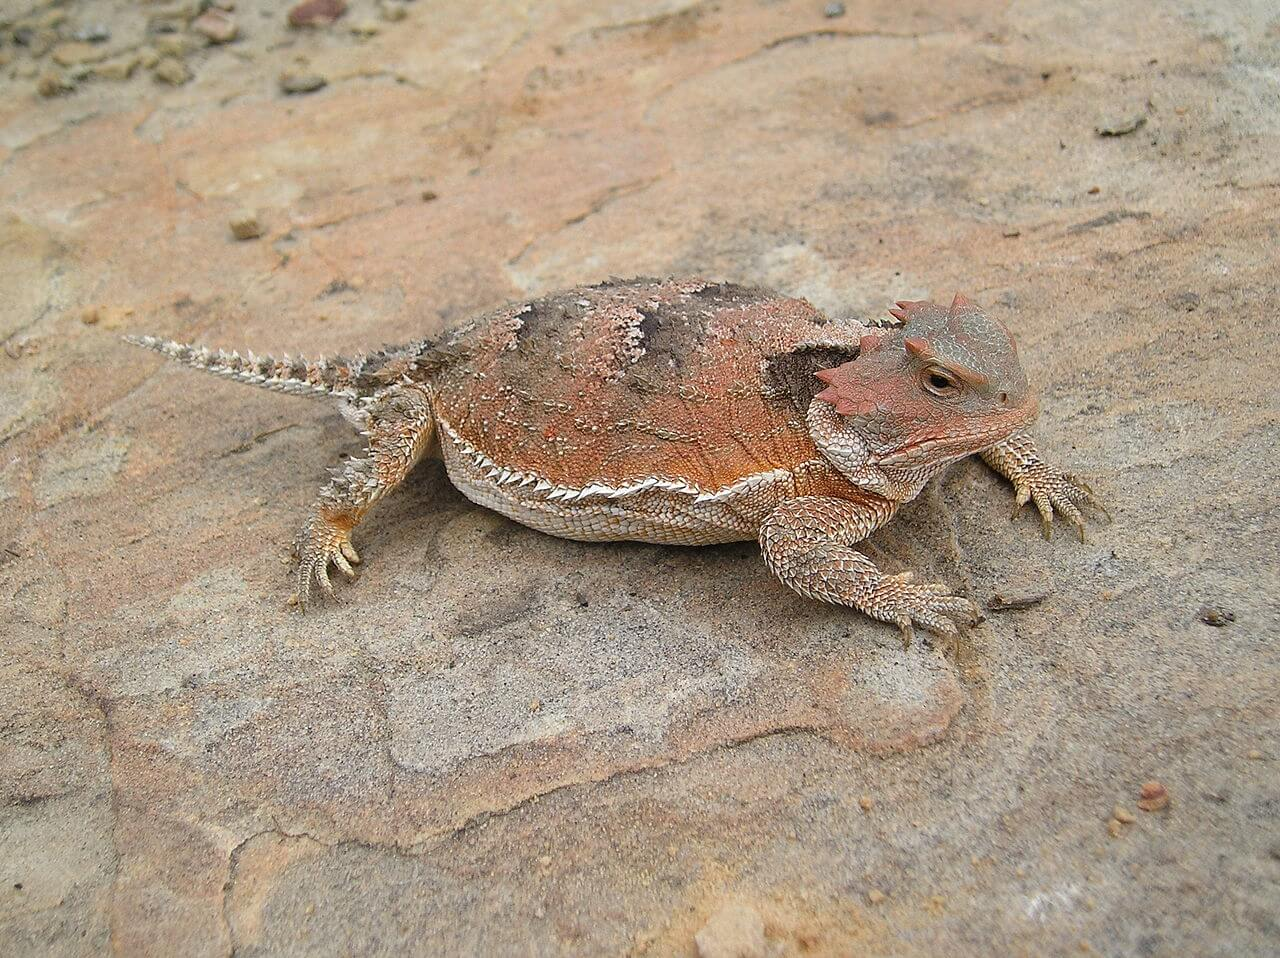 //en.wikipedia.org/wiki/Greater_short-horned_lizard#/media/File:Pregenant_female_Greater_Short-Horned_Liazard.jpg